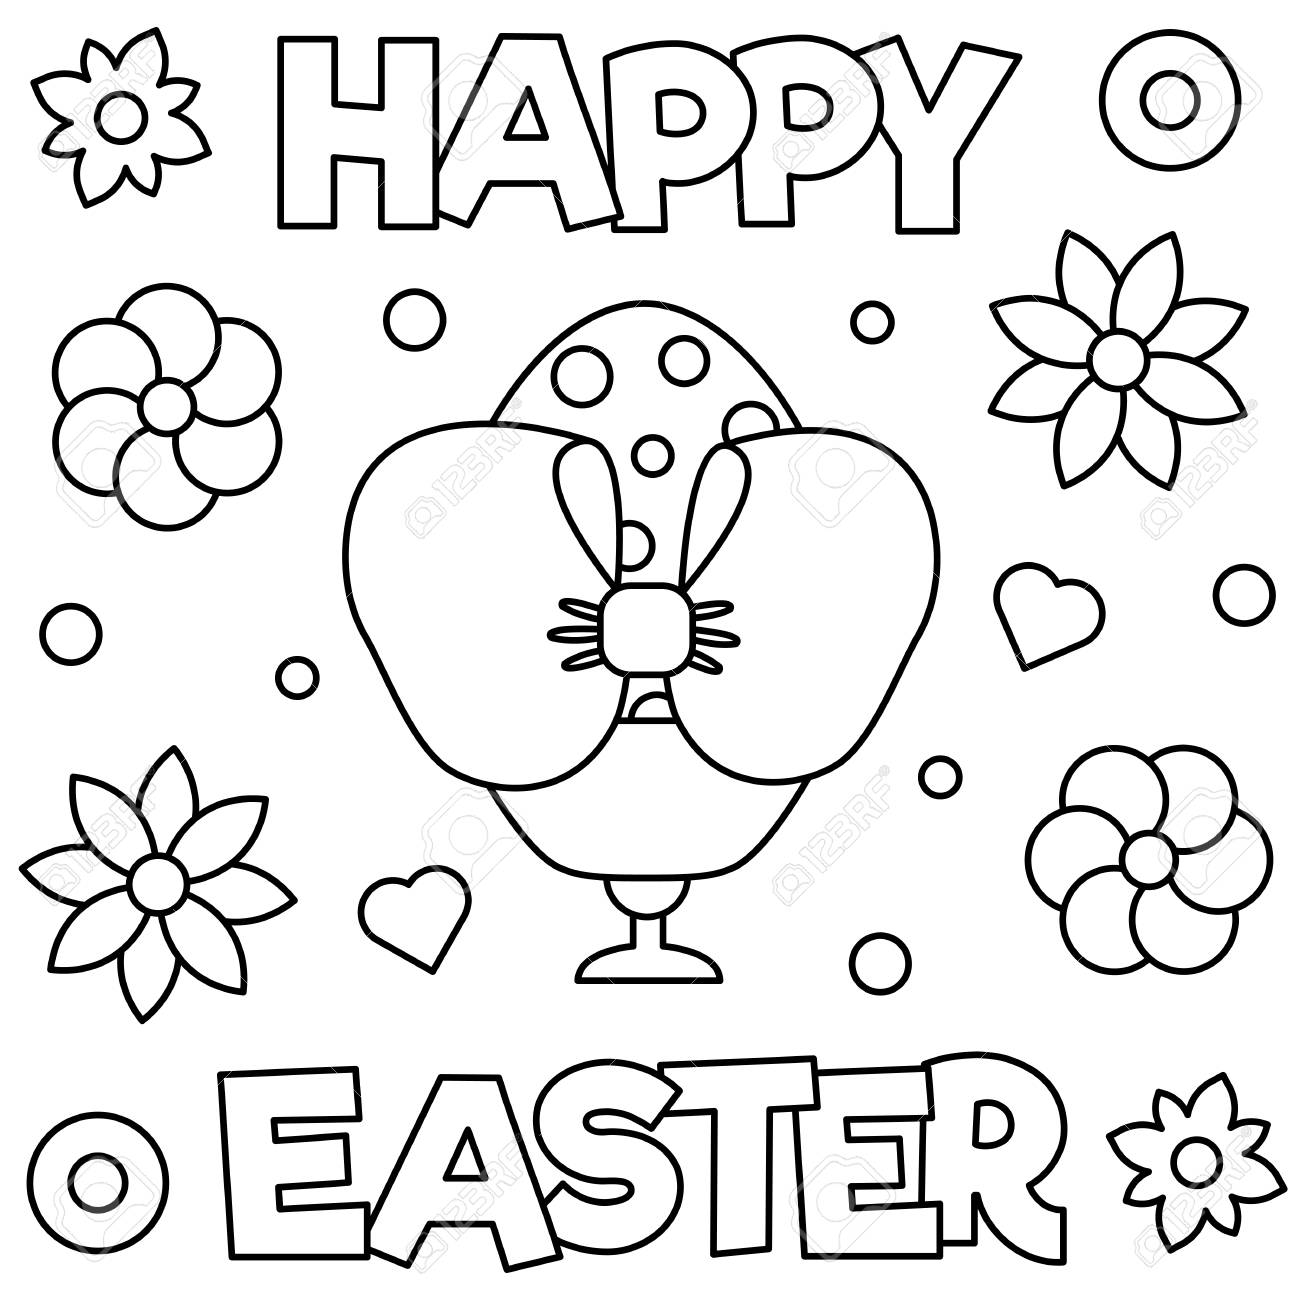 Happy Easter Coloring Page Vector Illustration Royalty Free